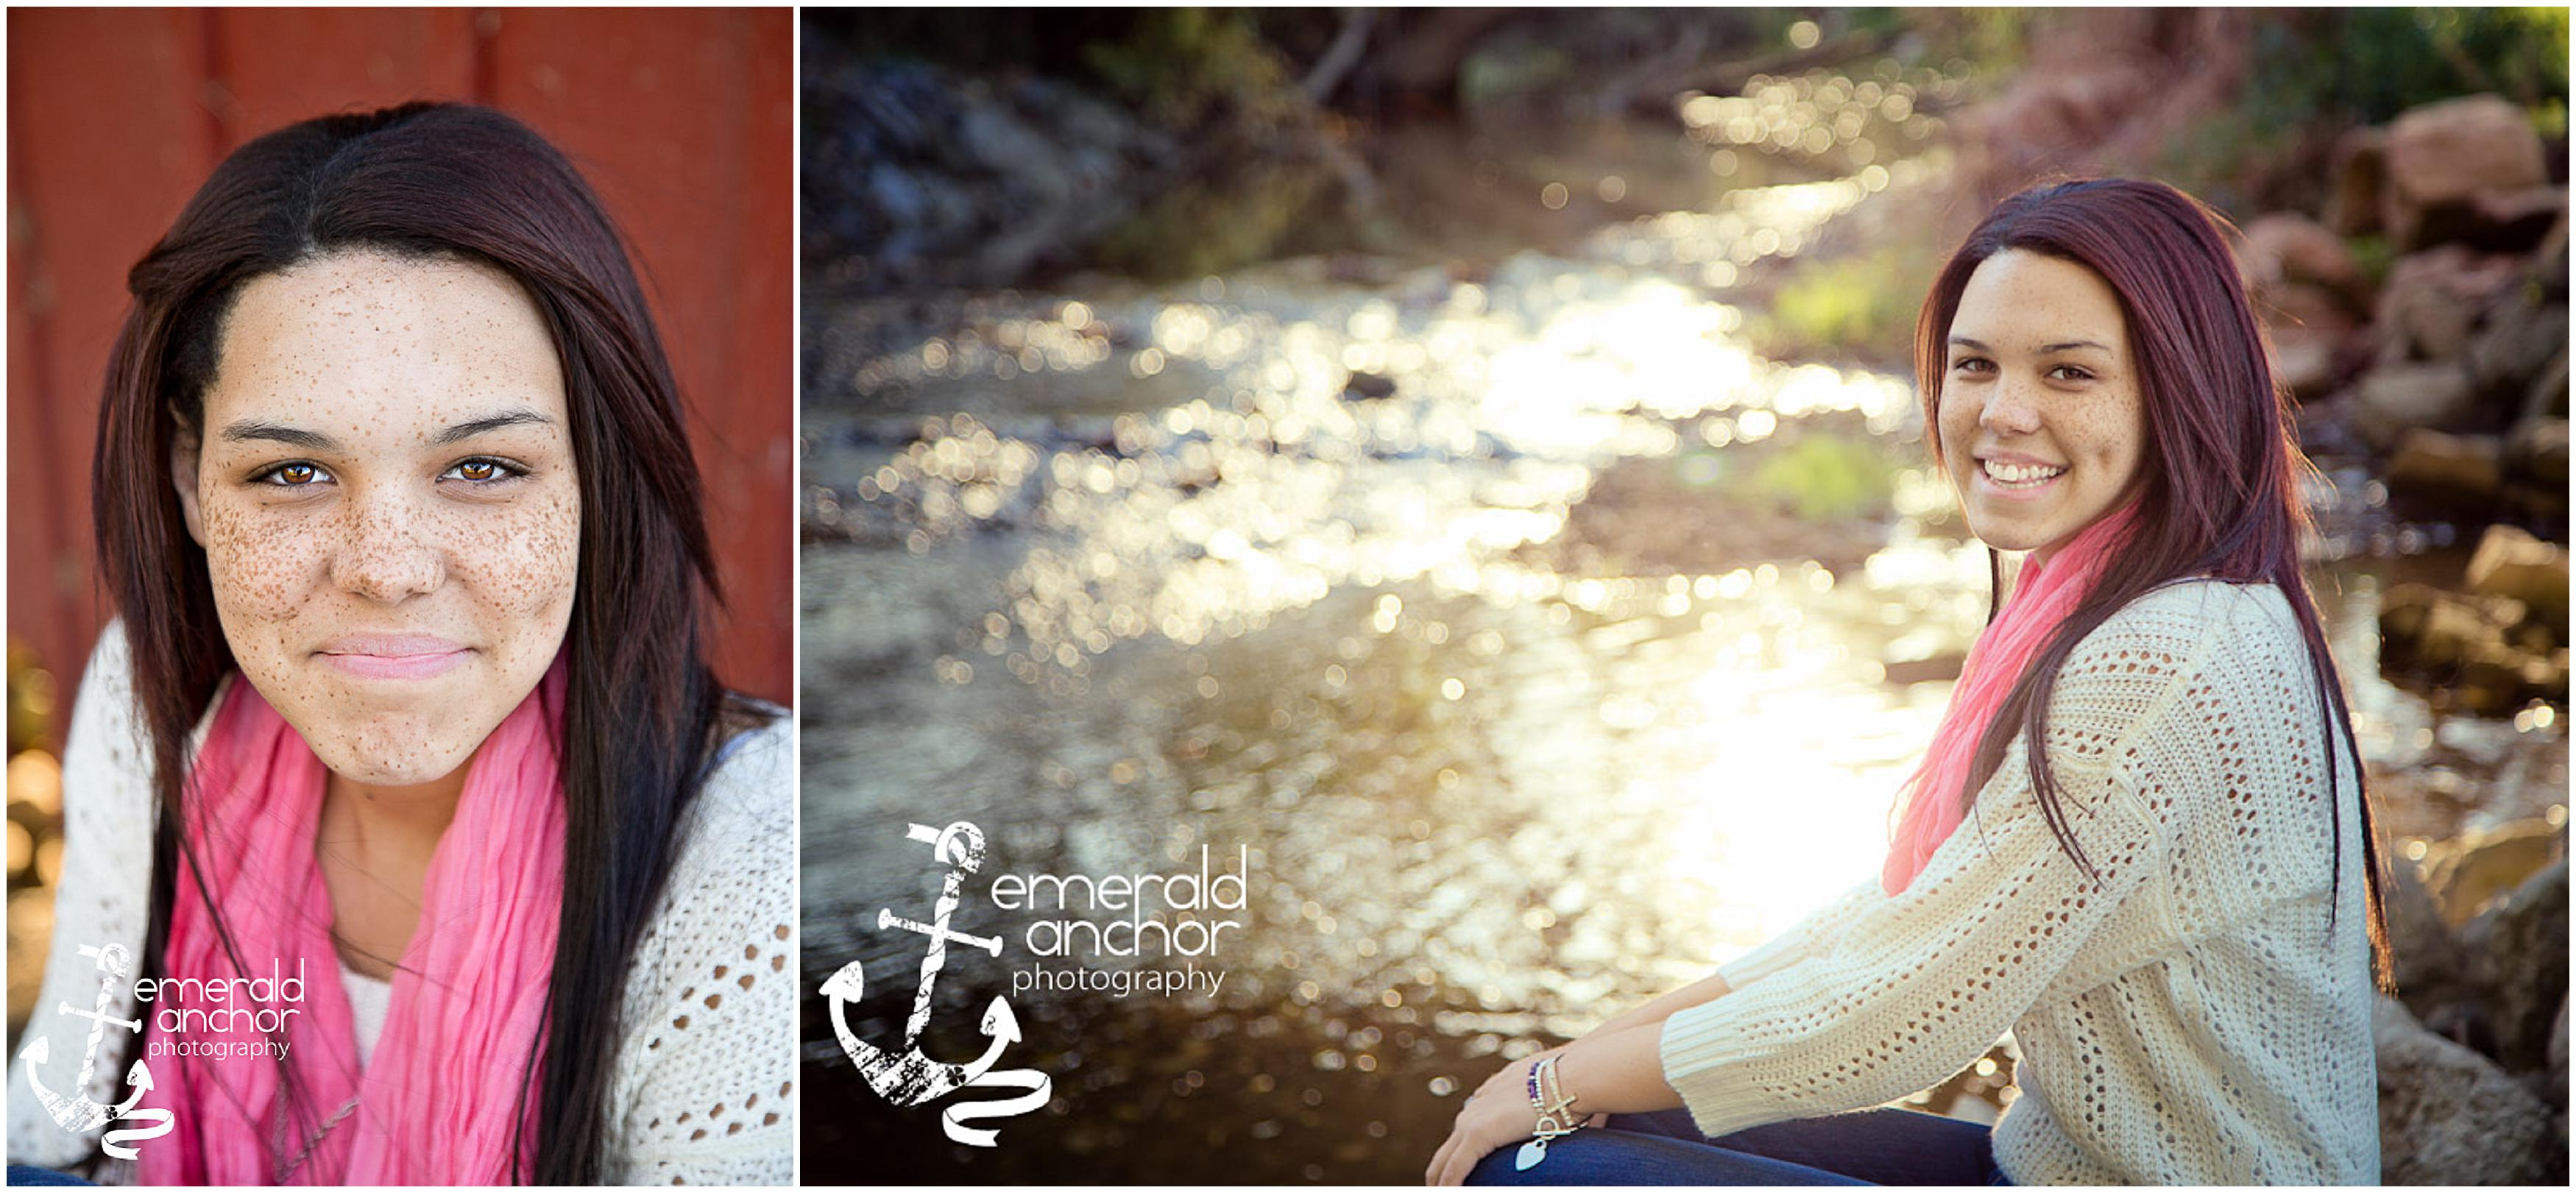 Emerald Anchor Photography Senior Portraits (3)